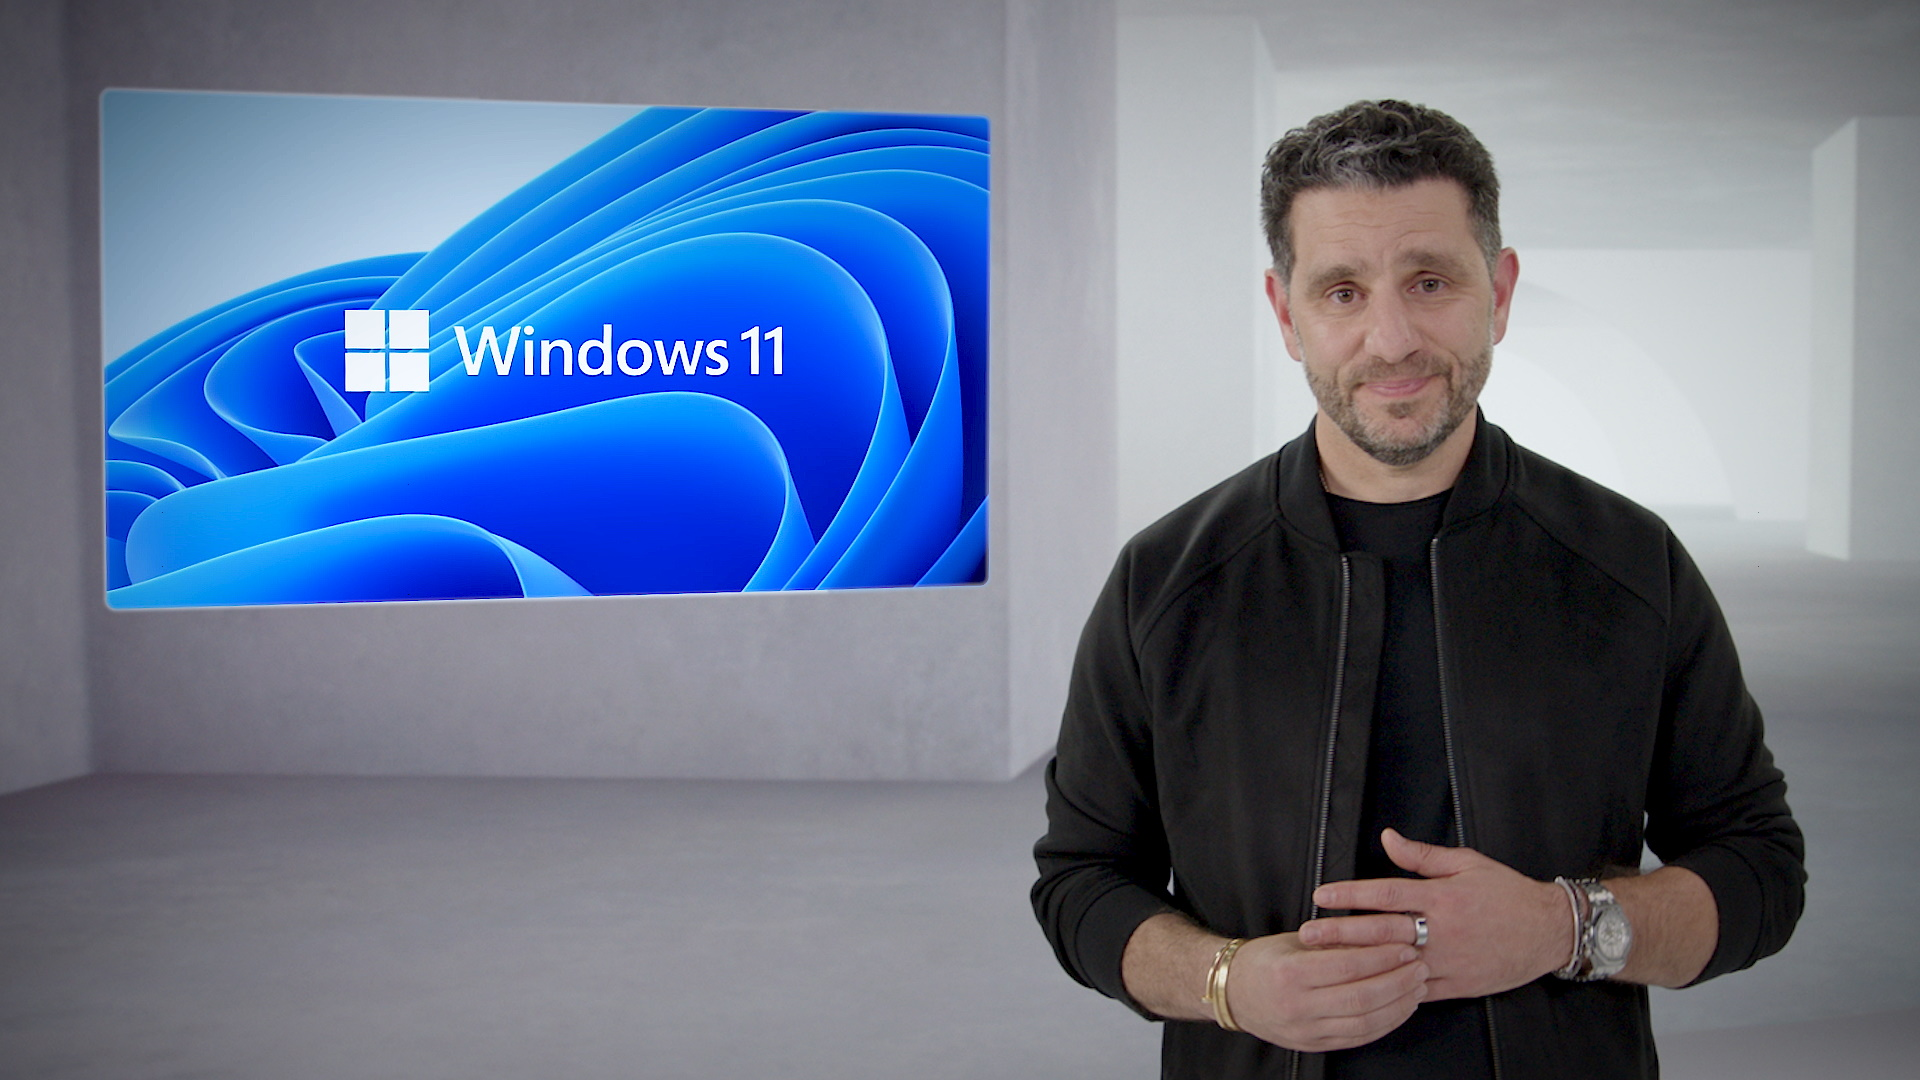 Panos Panay at the Windows announcement